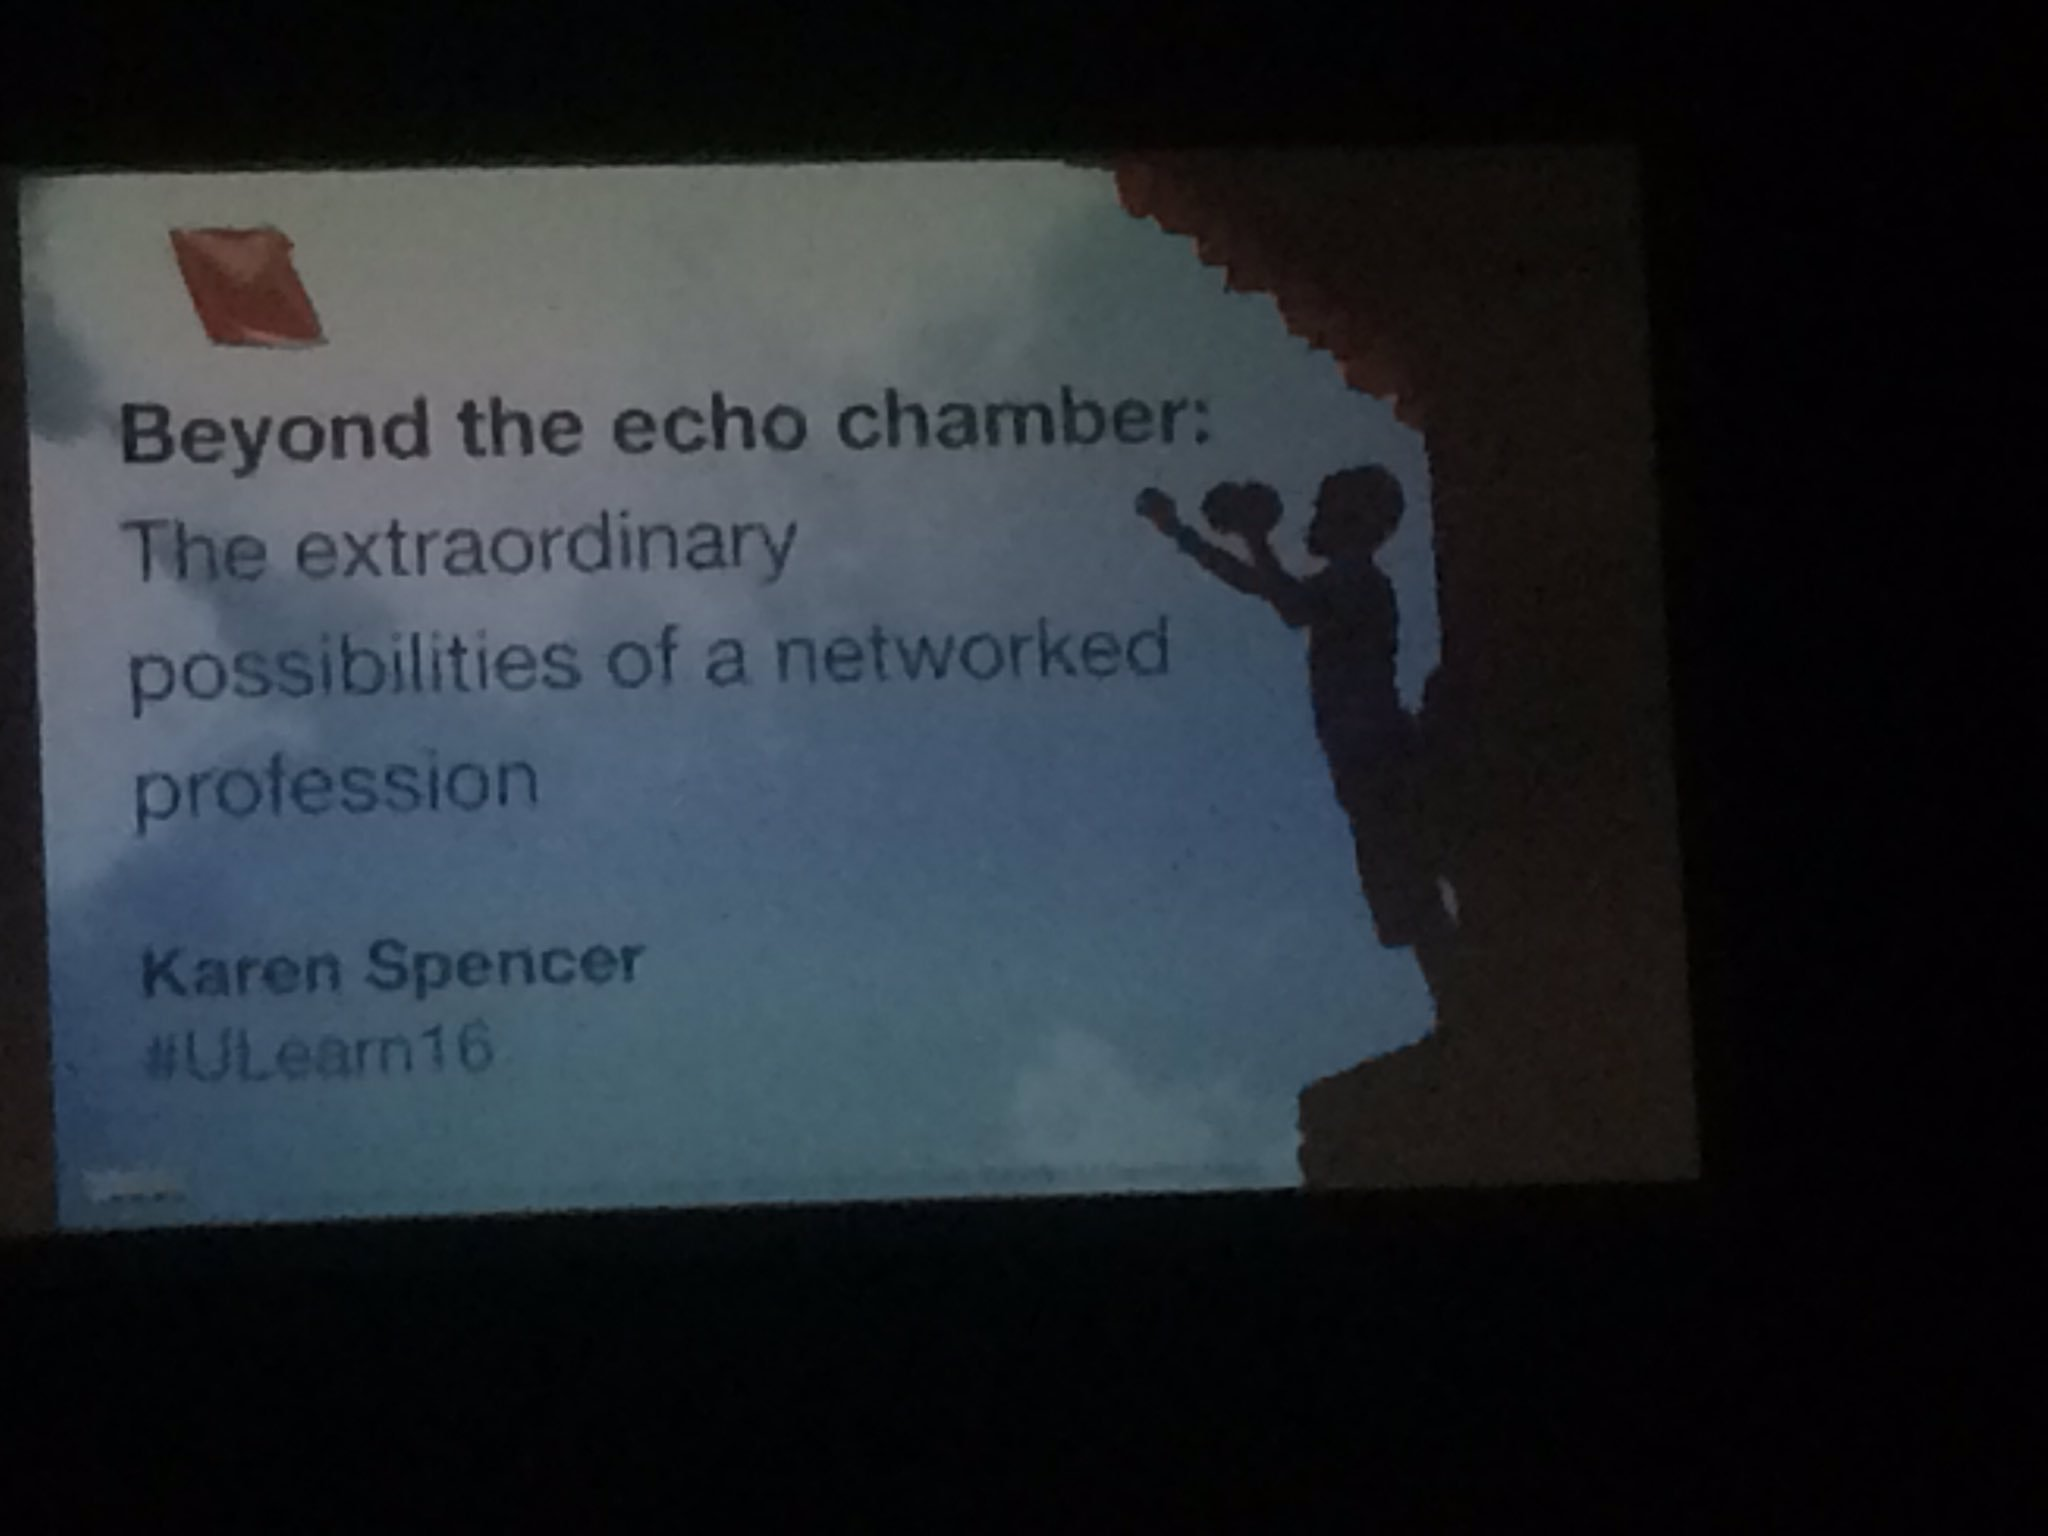 @CbwynnWynn @virtuallykaren beyond the echo #ulearn16 love the reminder to connect widely and with divergent minds https://t.co/a3d7Yp5uKH